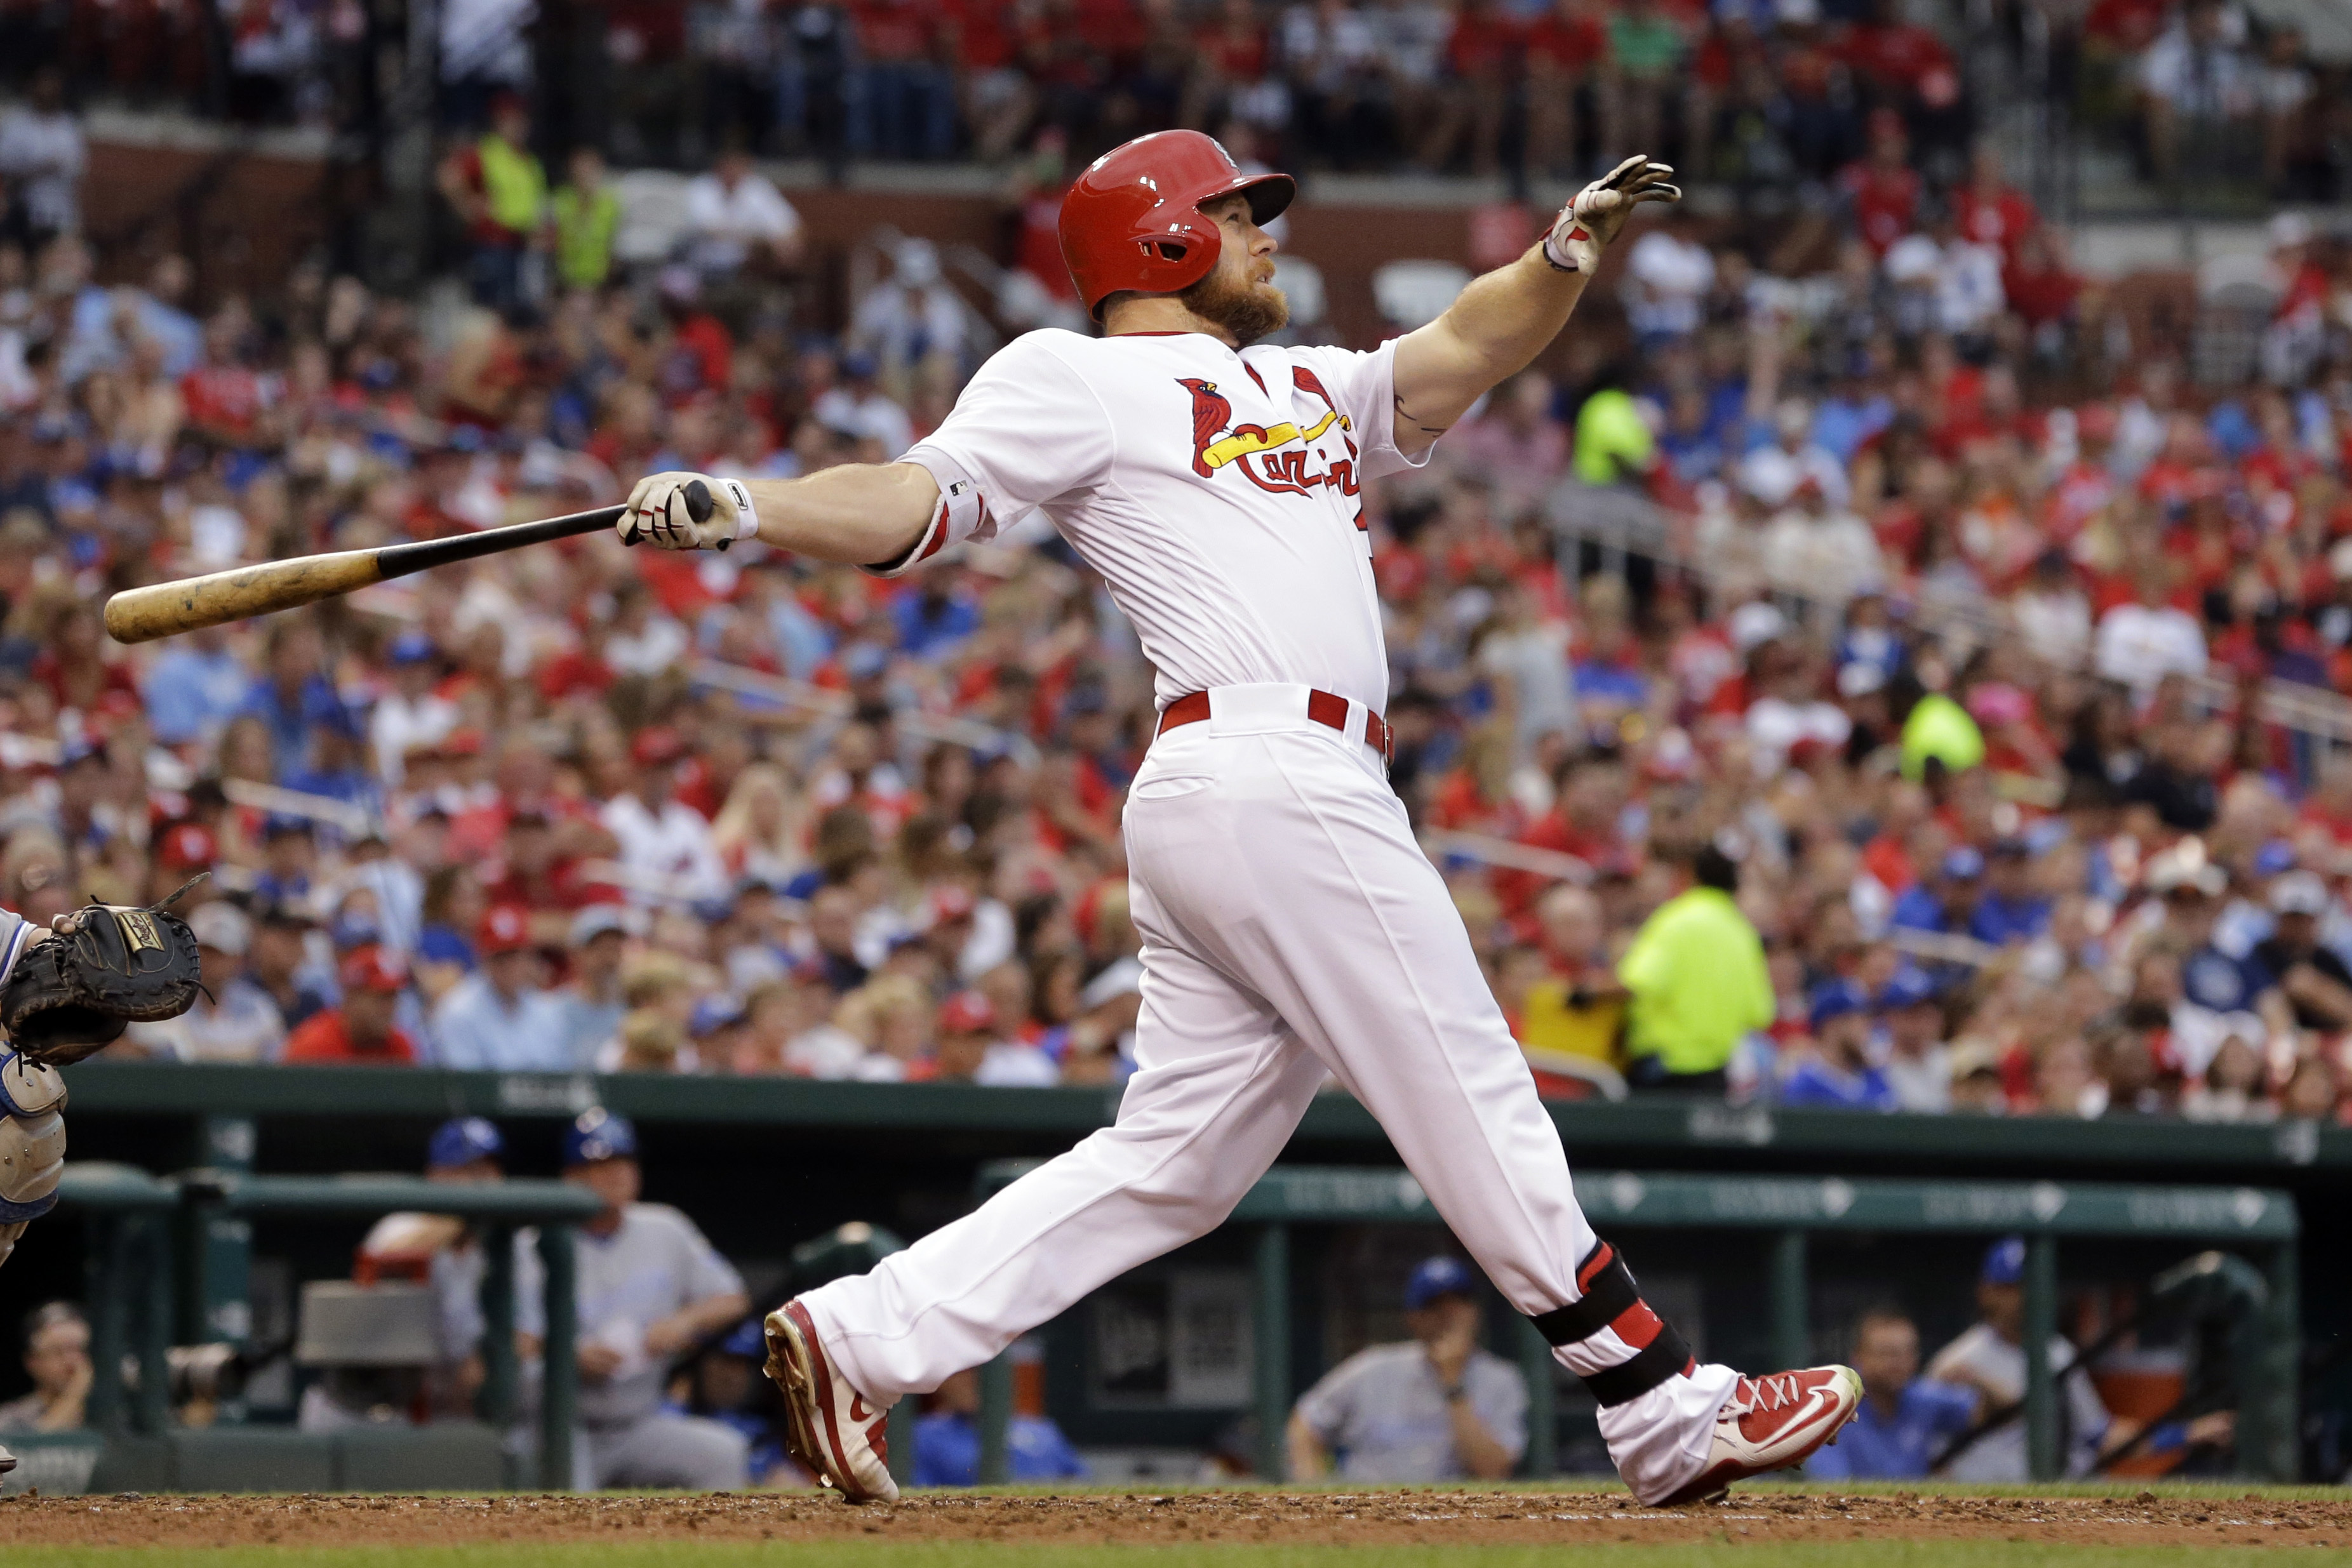 St. Louis Cardinals' Brandon Moss watches his solo home run during the fourth inning of a baseball game against the Kansas City Royals on Thursday, June 30, 2016, in St. Louis. (AP Photo/Jeff Roberson)